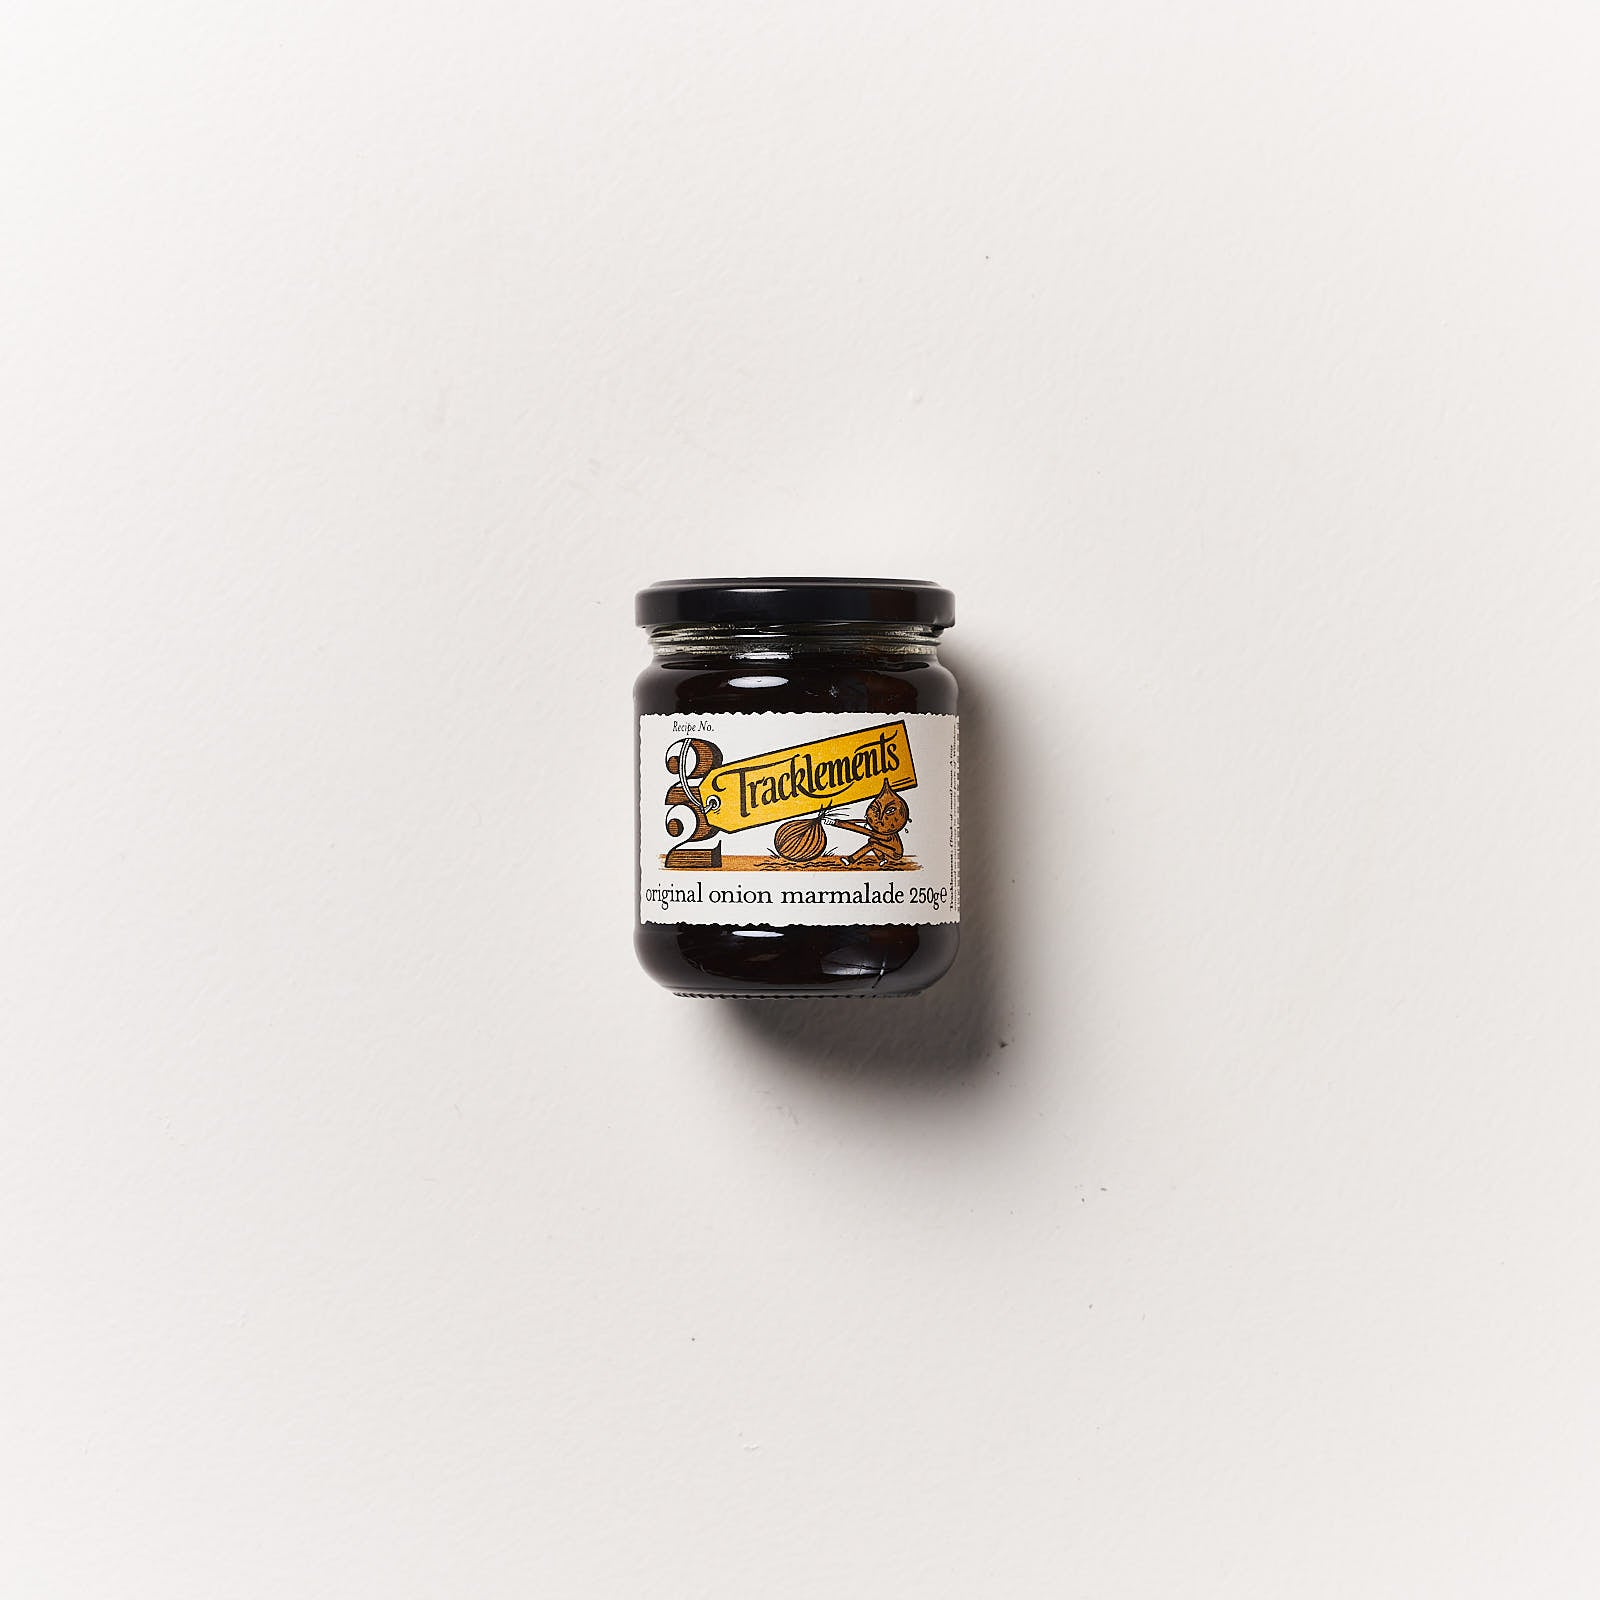 Tracklement Original Onion Marmalade